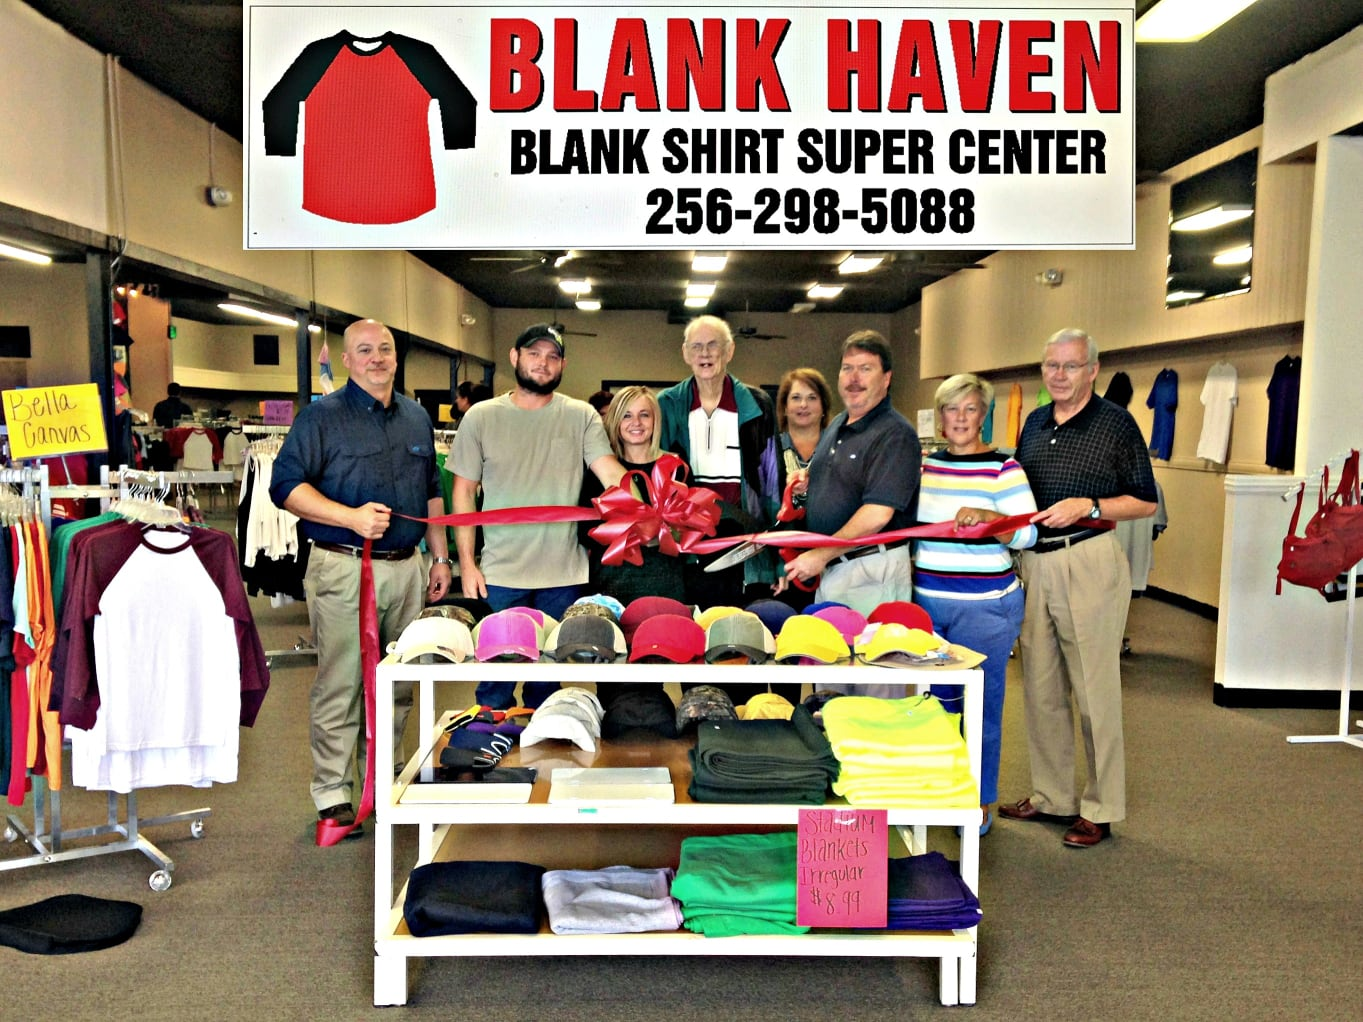 Blank-Haven-ACOC-Ribbon-Cutting-w-Sign-1-w1363.jpg